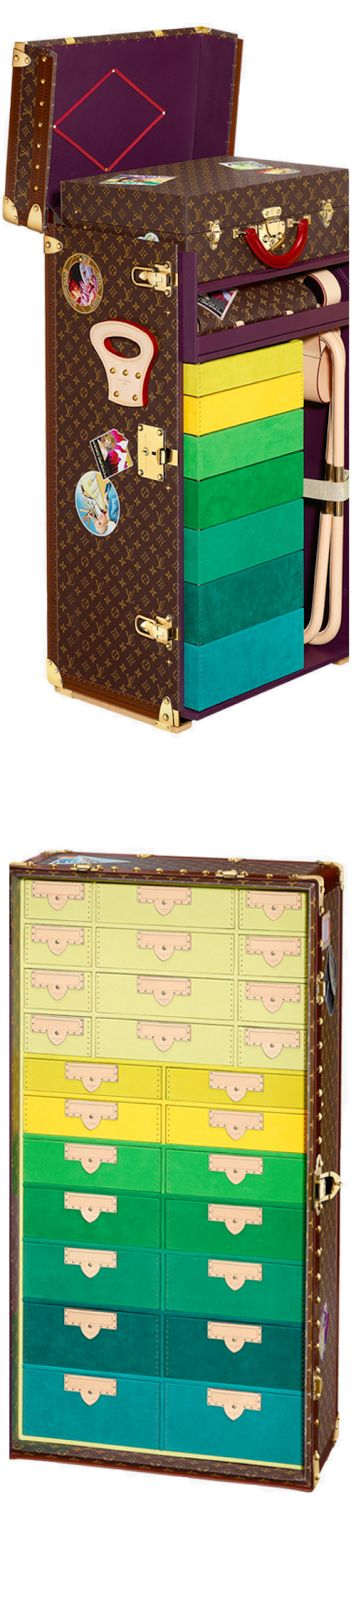 LOOKandLOVEwithLOLO~ Louis Vuitton Icon and Iconoclasts Collection. Studio In A Trunk Cindy Sherman